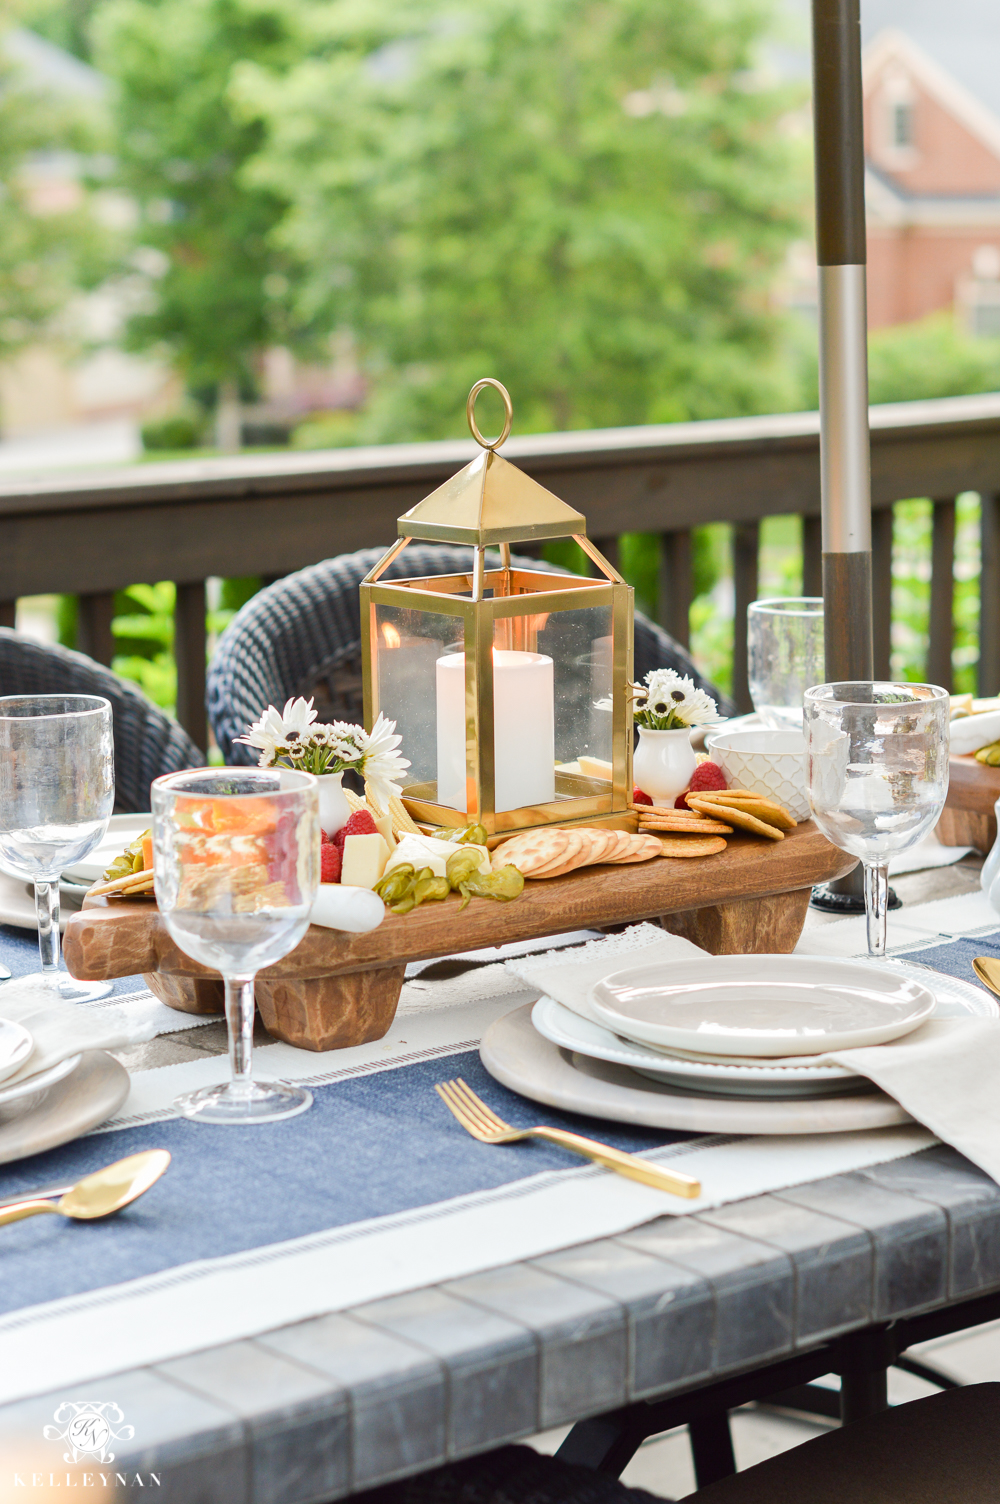 Outdoor Entertaining and Table Ideas with Cheese board appetizer centerpieces- wooden paddle boards from pottery barn